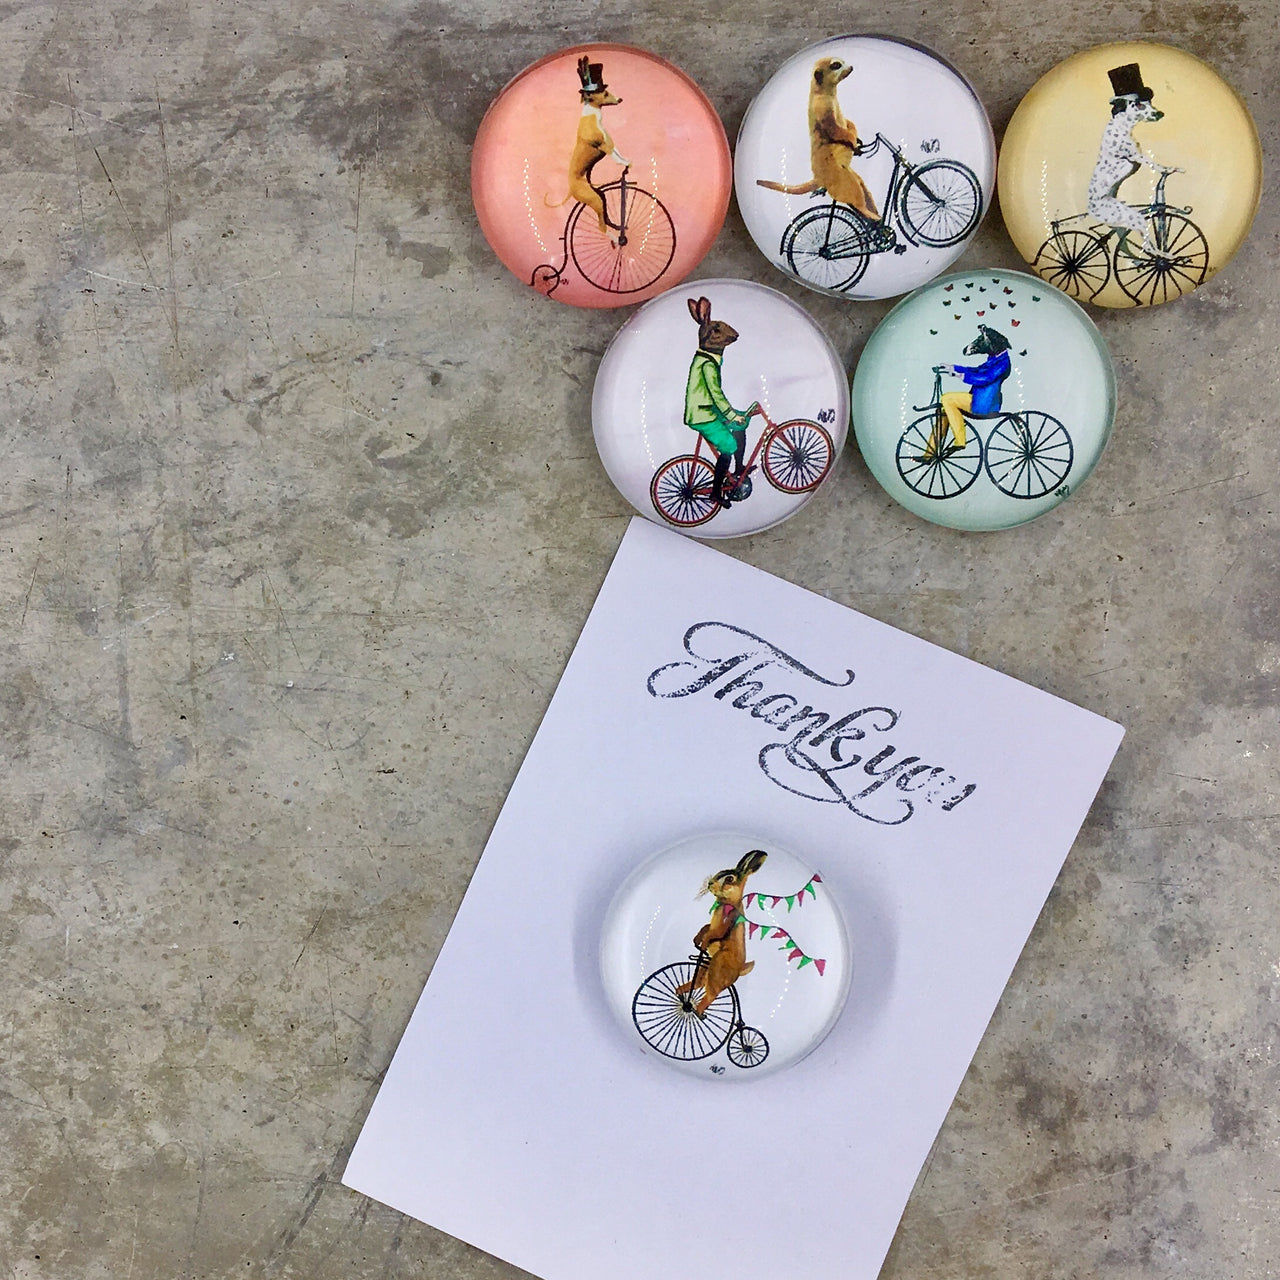 Animal Cyclist Magnets shown with Thank You note